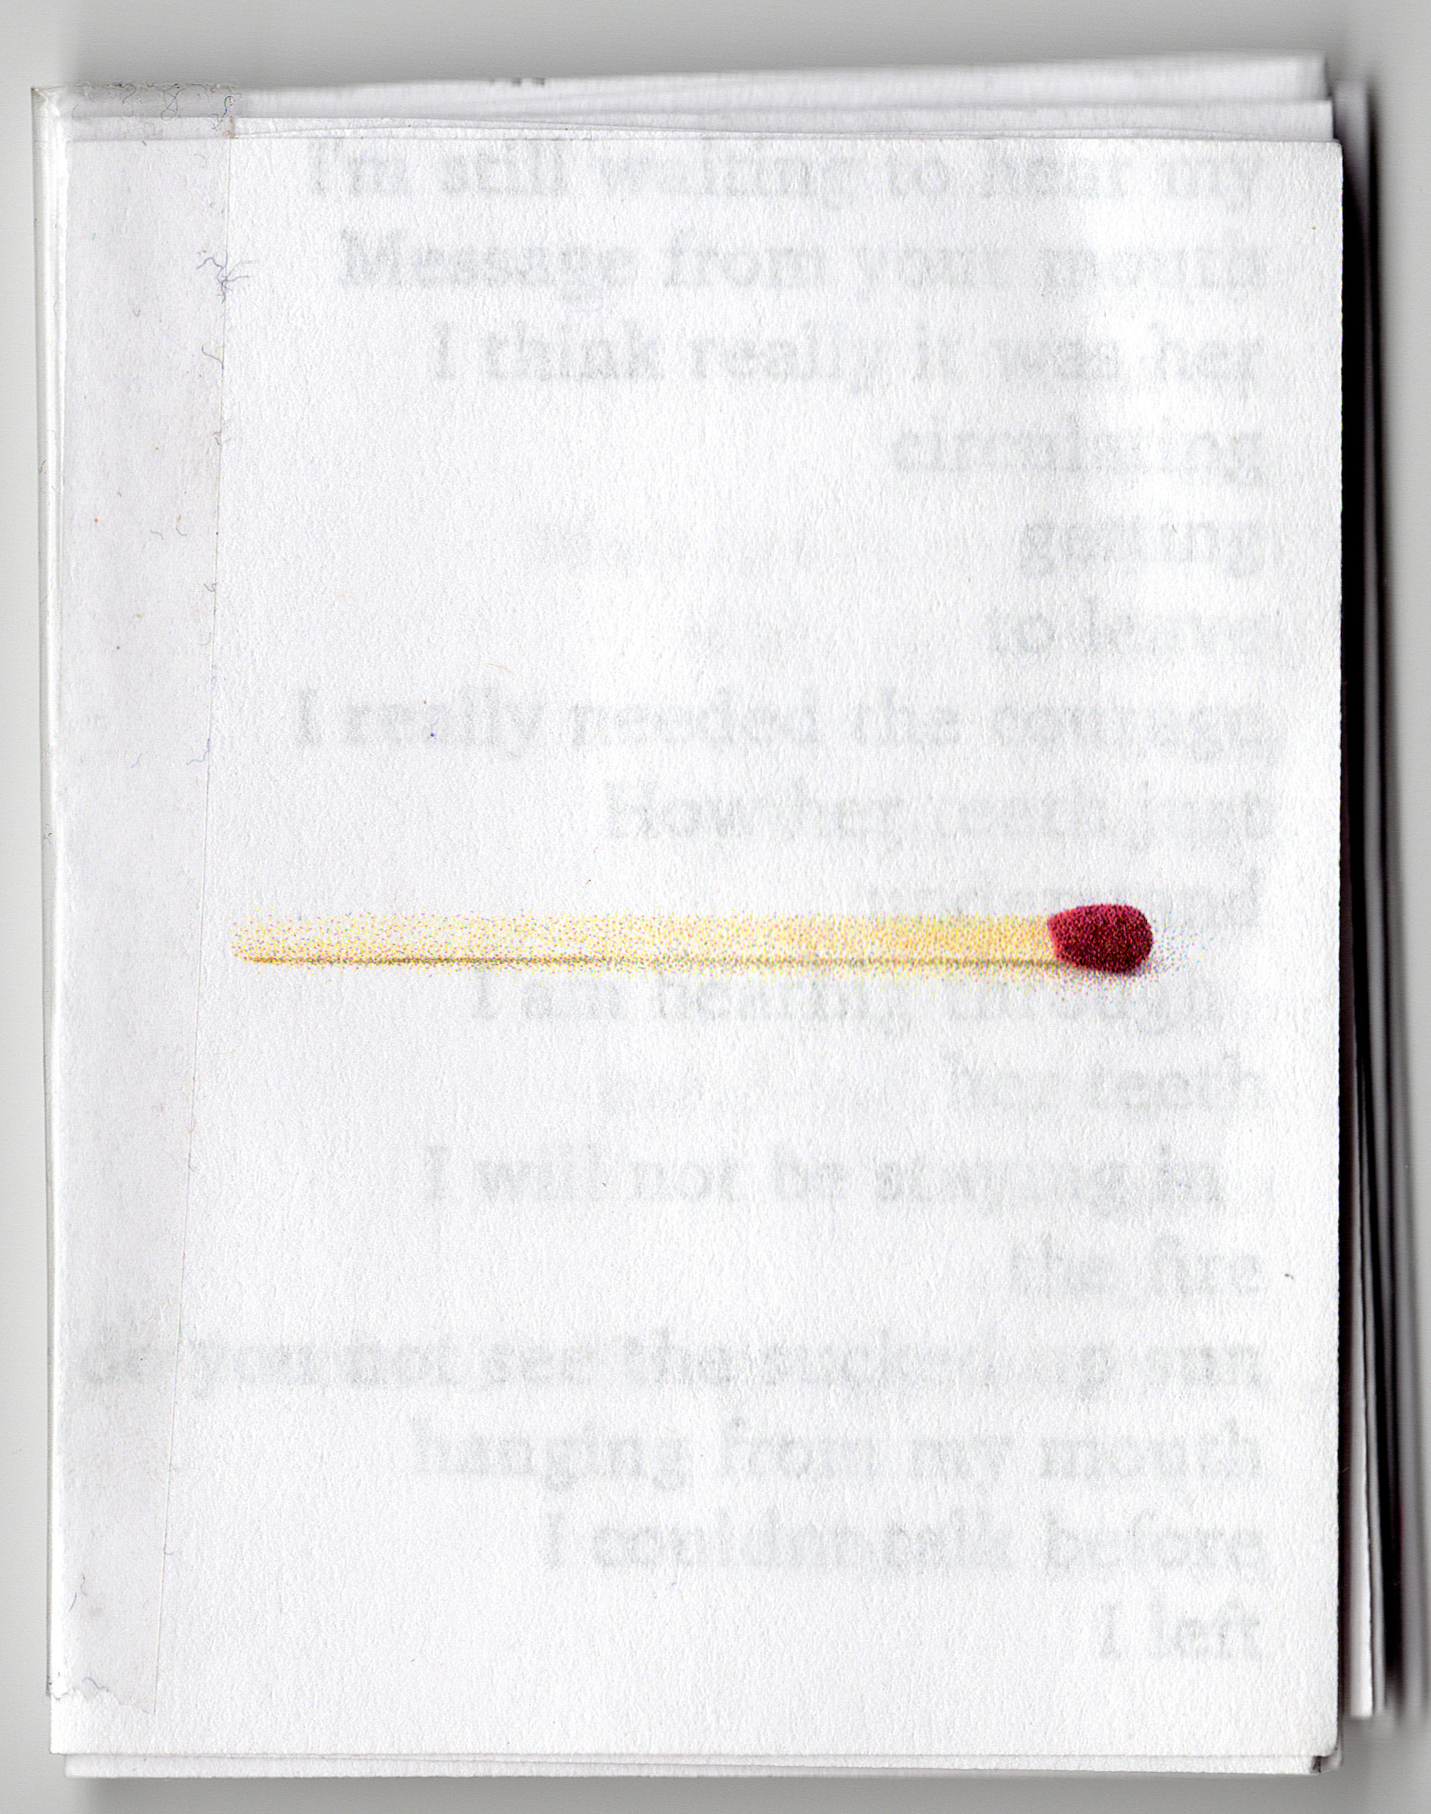 this set of matchbook zines contains a series of poems inspired by Janaka stucky's poem  the art of loss is a lost art